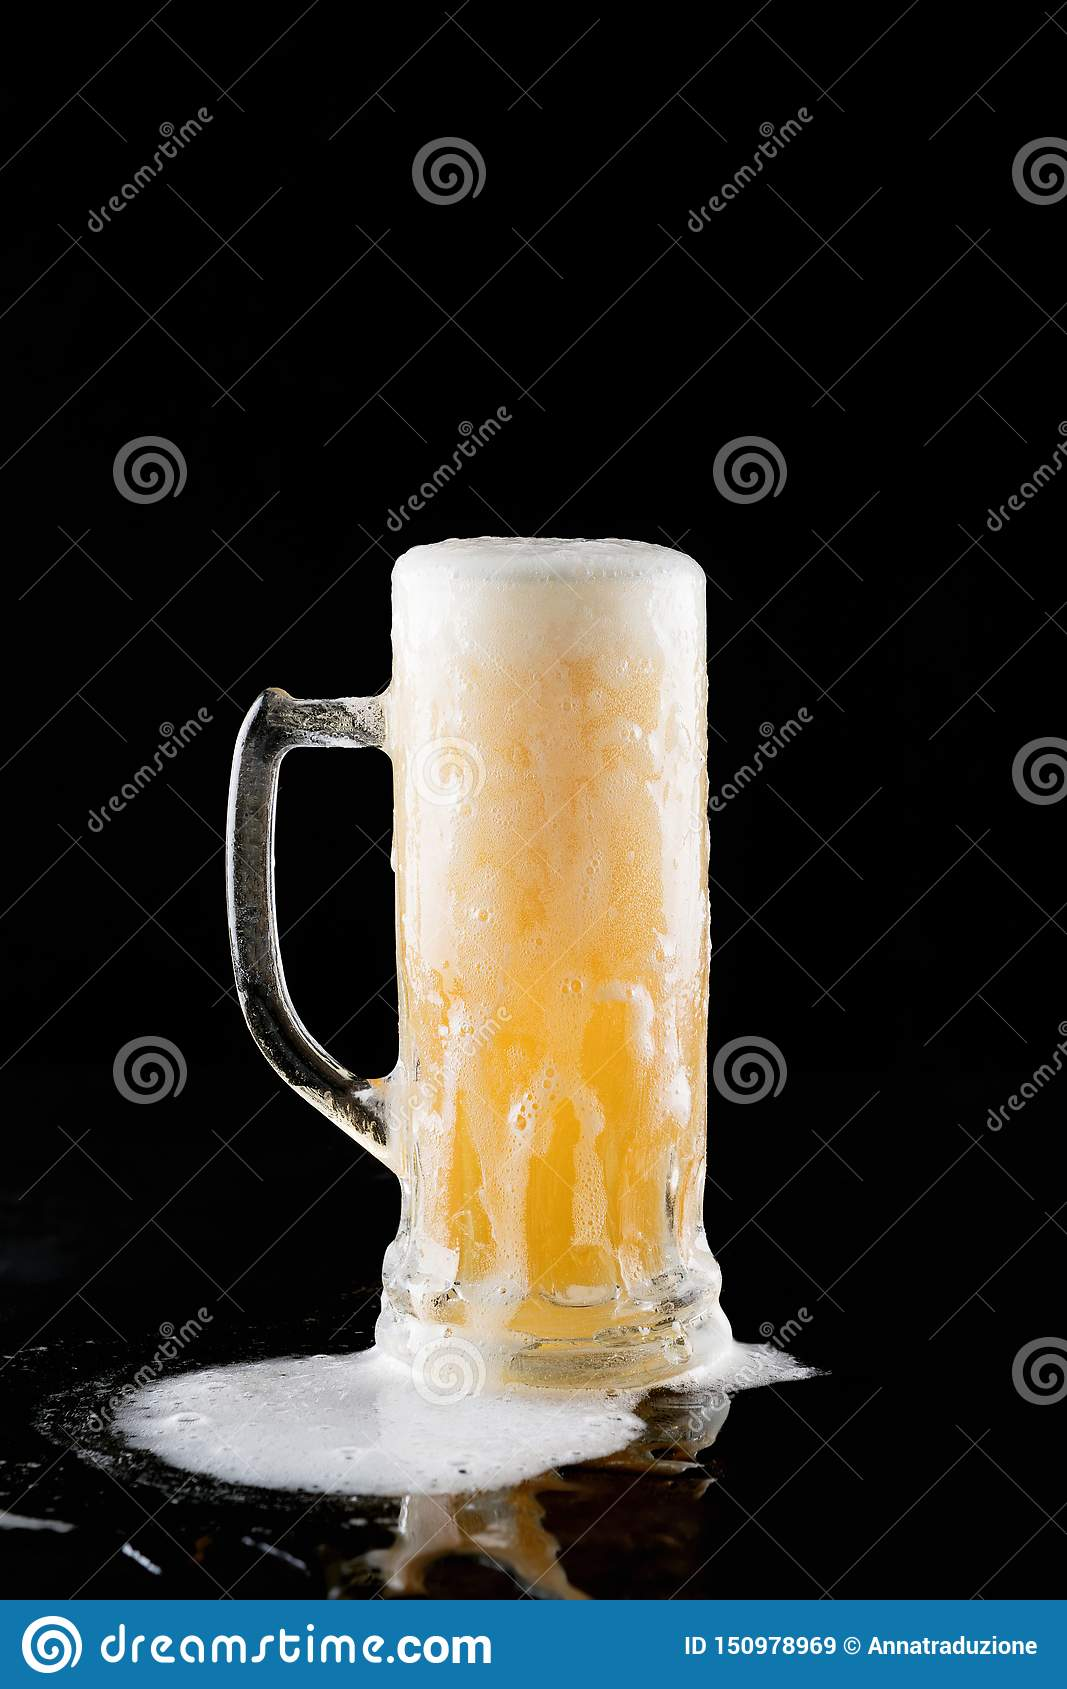 Overflowing mug of fresh cold light beer with froth flowing on the table and beautiful spilled beer on a black background with